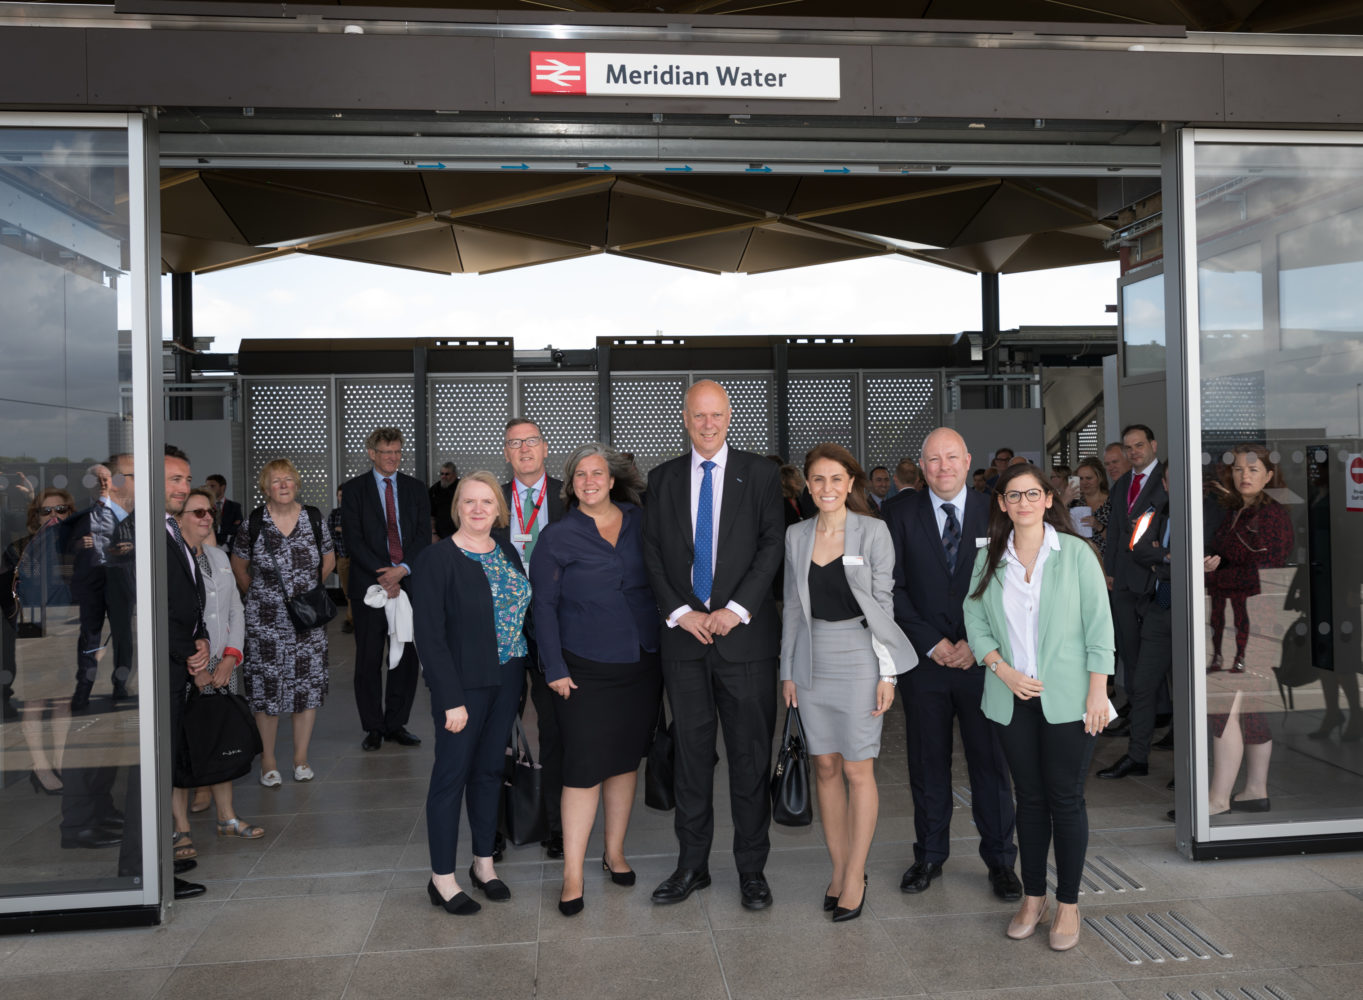 Transport secretary Chris Grayling at the opening of Meridian Water Station